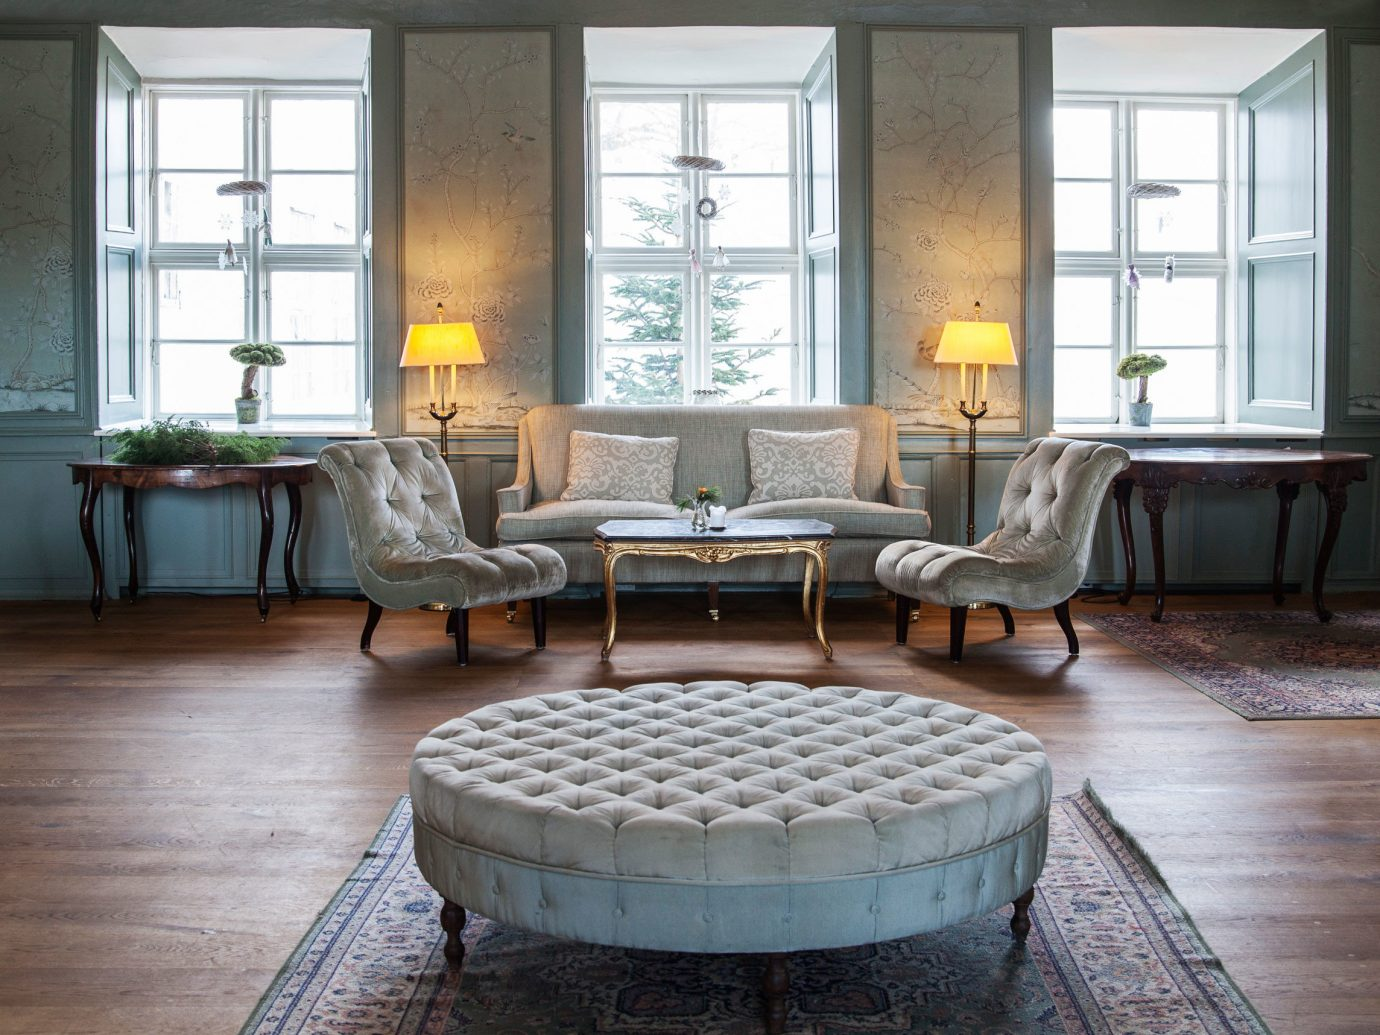 Denmark Finland Hotels Landmarks Luxury Travel Sweden floor indoor window room Living furniture living room table chair interior design flooring coffee table home hardwood wood flooring couch dining room loveseat wood area